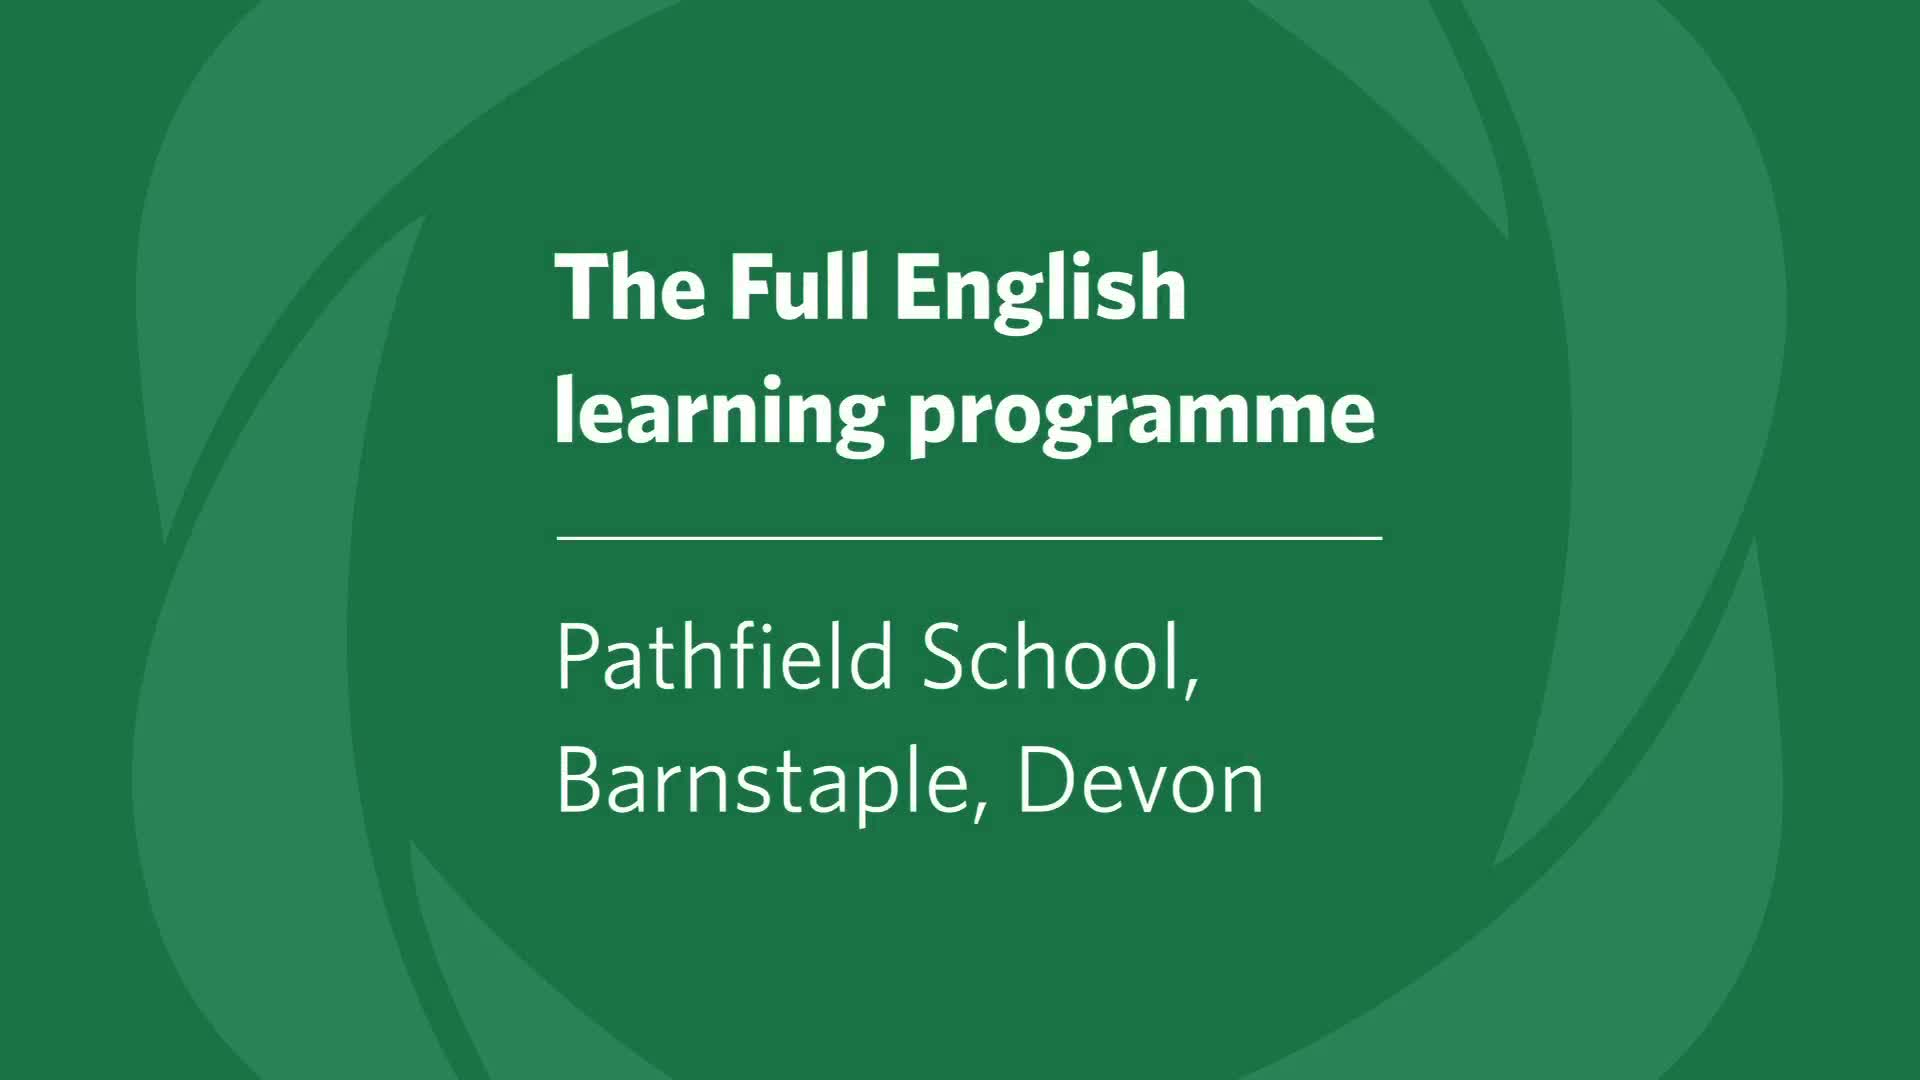 The Full English project at Pathfield School, Barnstaple, Devon